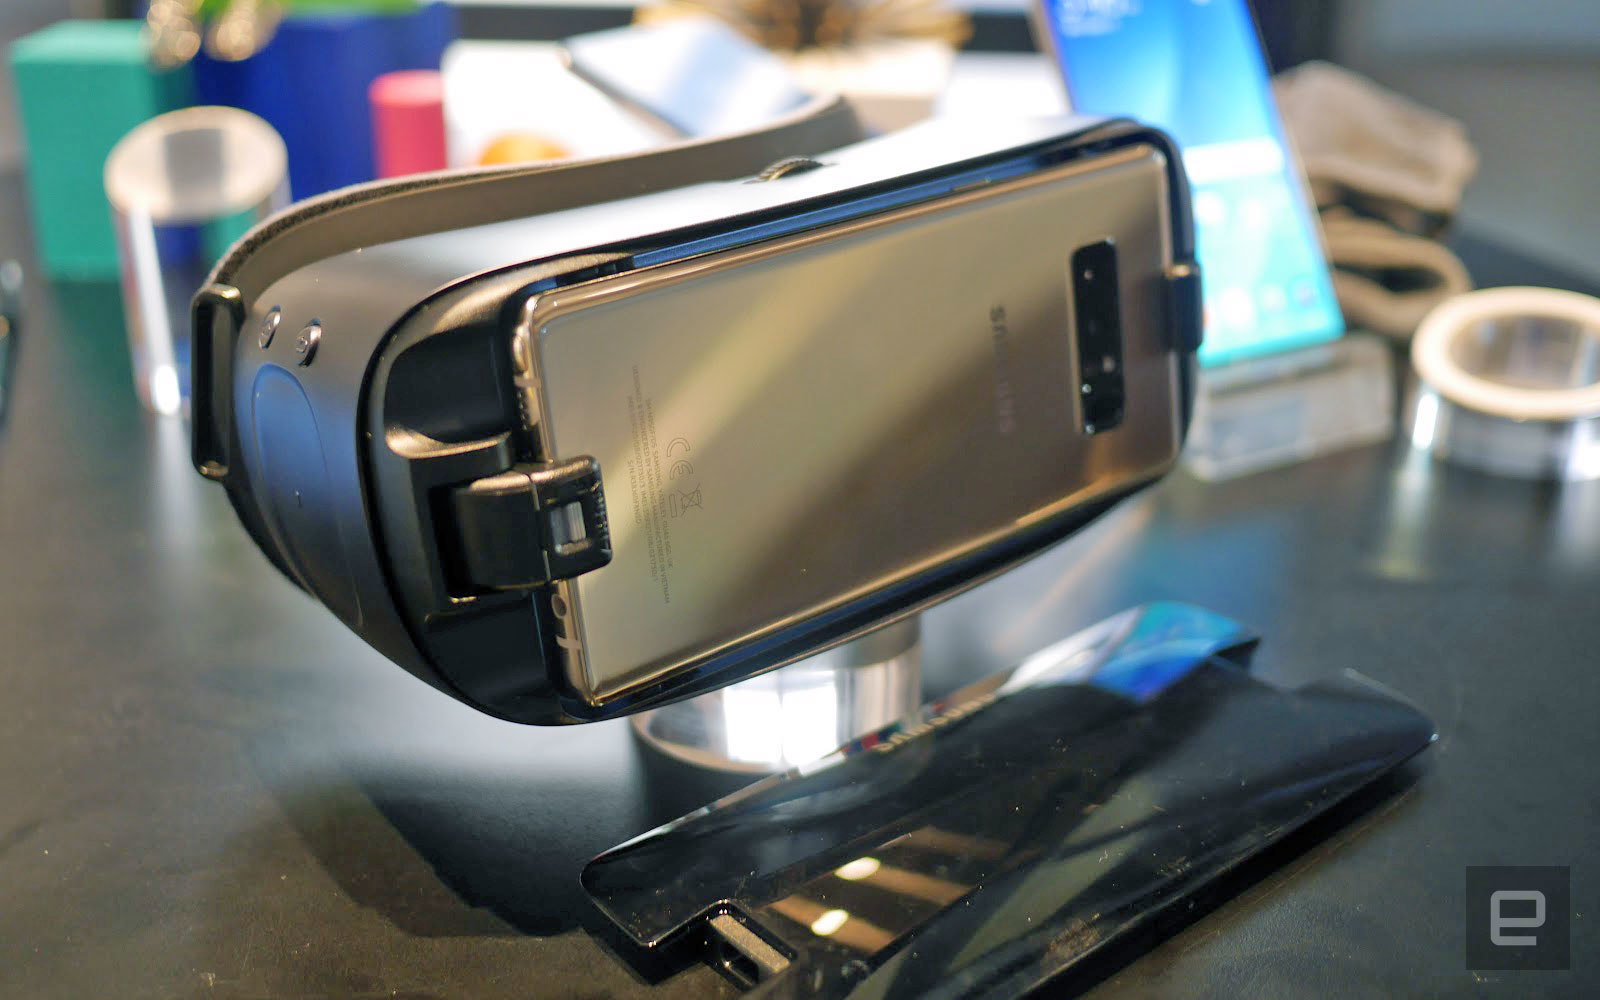 How to Play 3D Blu-ray on Samsung Note 8 With Gear VR?